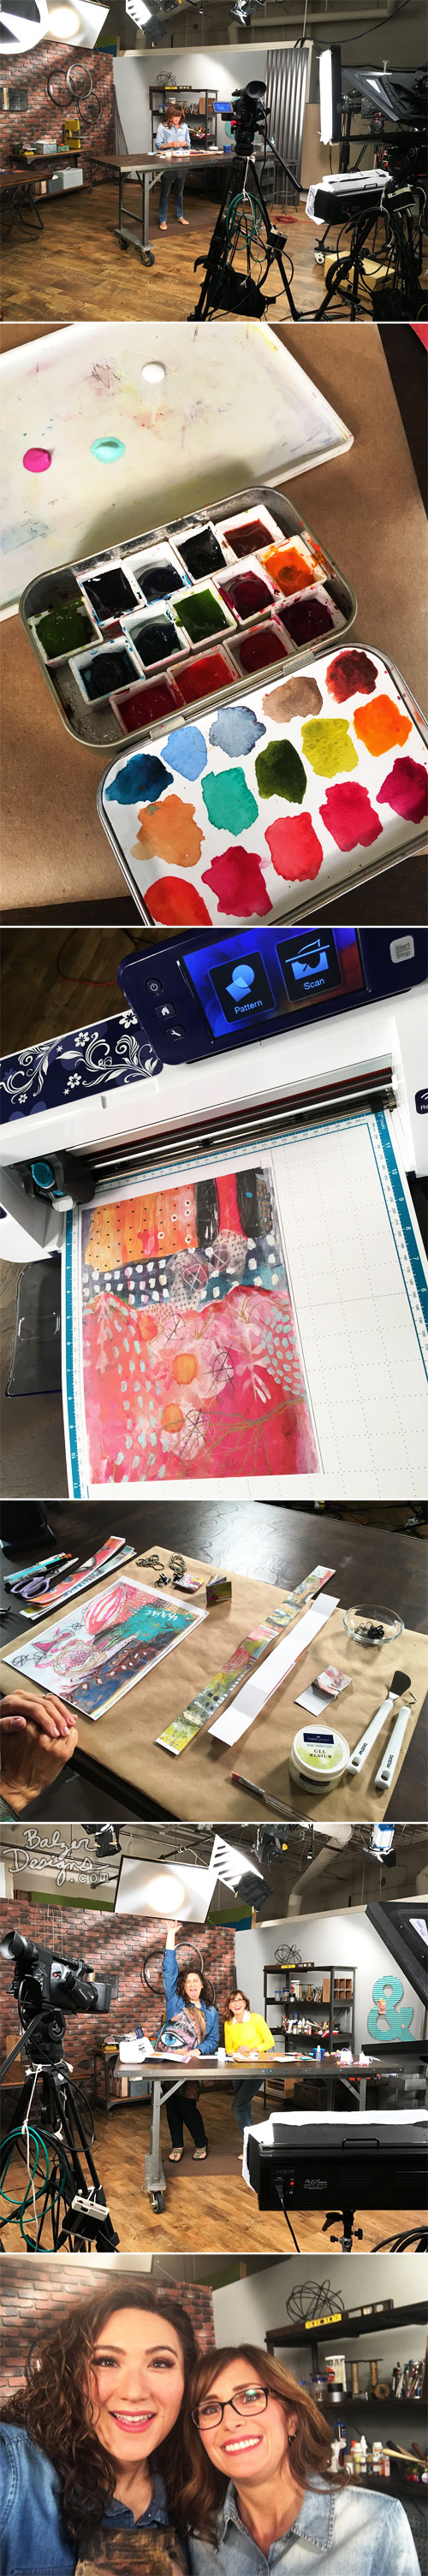 From the Balzer Designs Blog: Behind the Scenes of Make It Artsy: Season Two